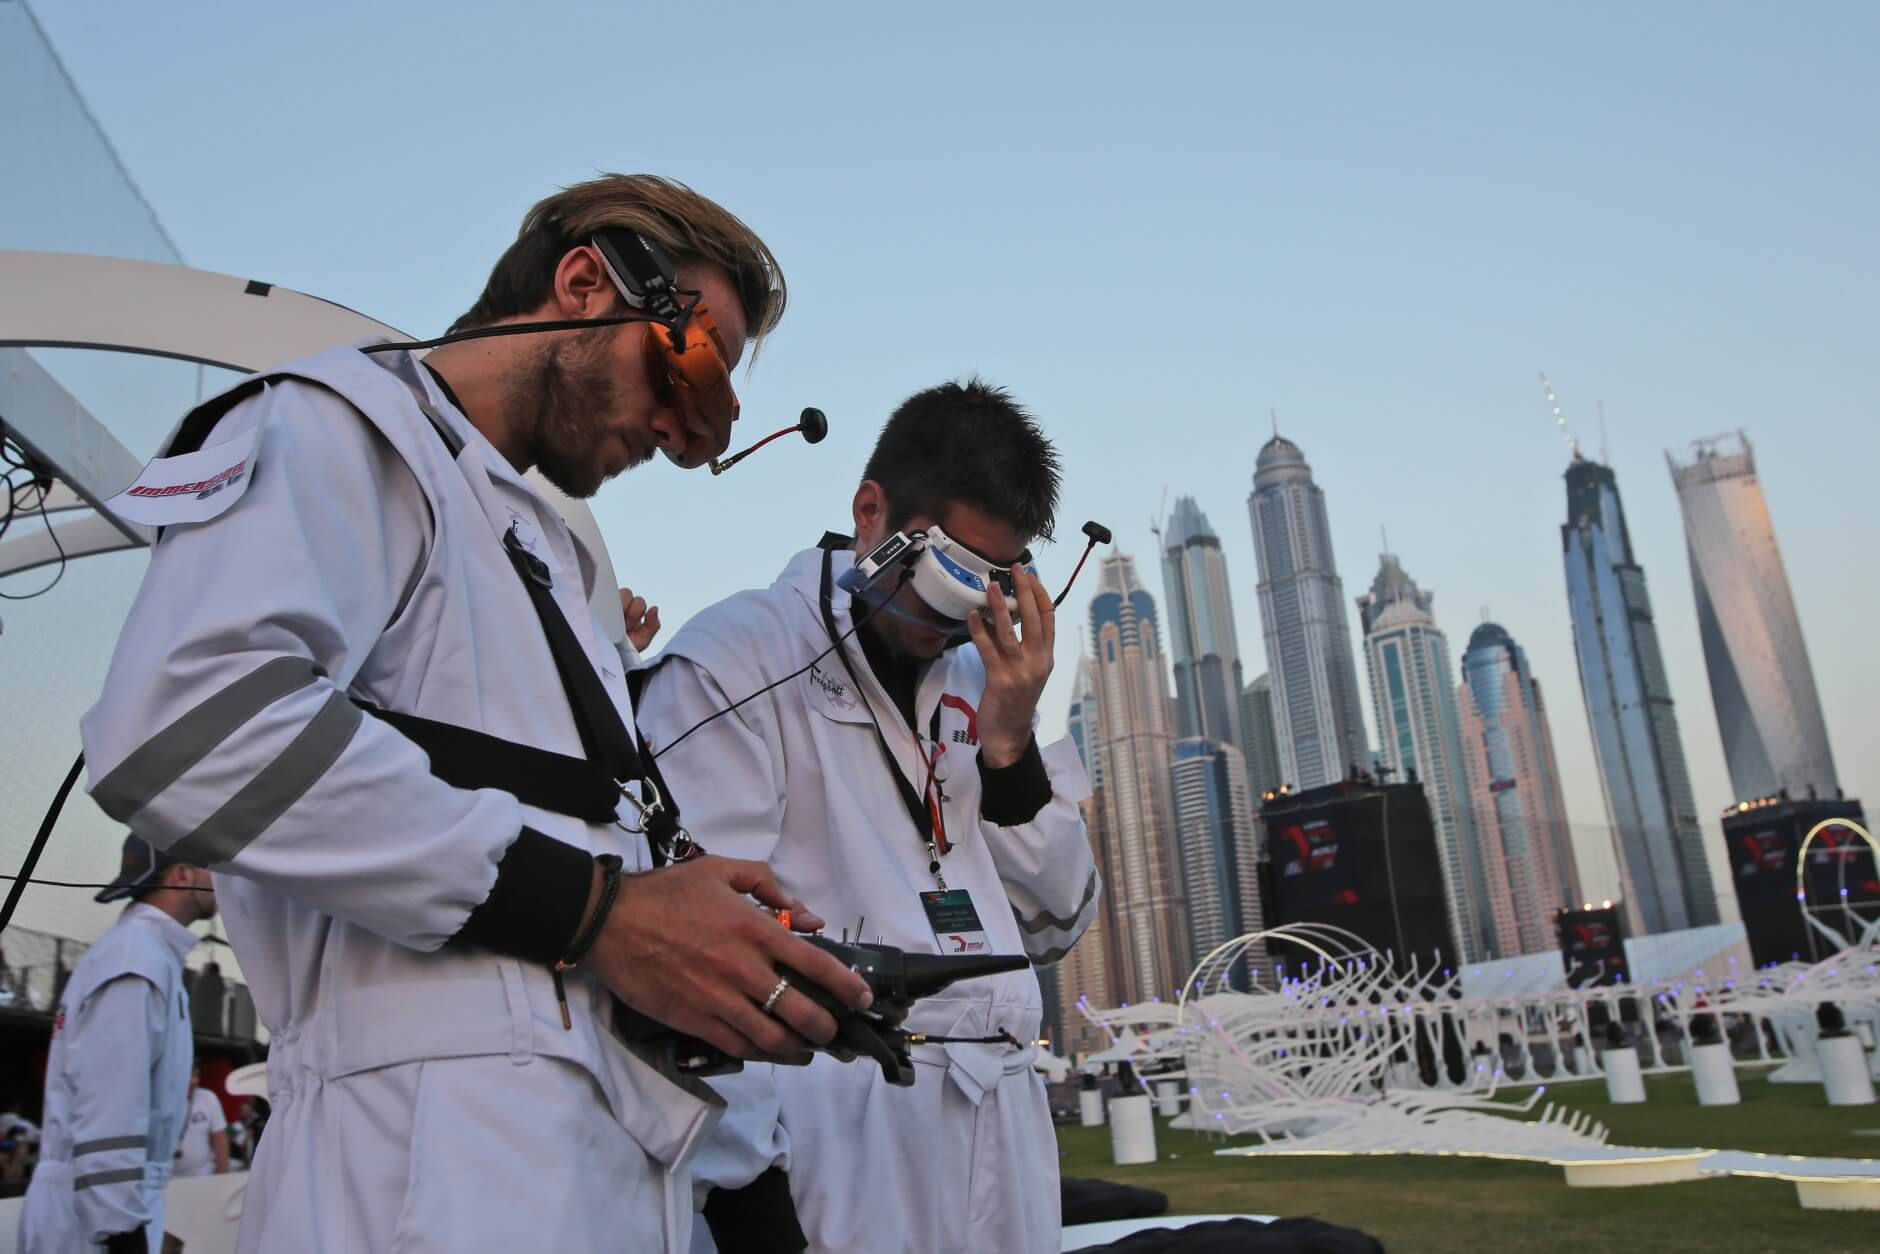 Fill Freybott, pilot of Freybott team of Germany, left, controls their team drone during the final day of the first World Drone Prix in Dubai, United Arab Emirates, Saturday, March 12, 2016. (AP Photo/Kamran Jebreili)